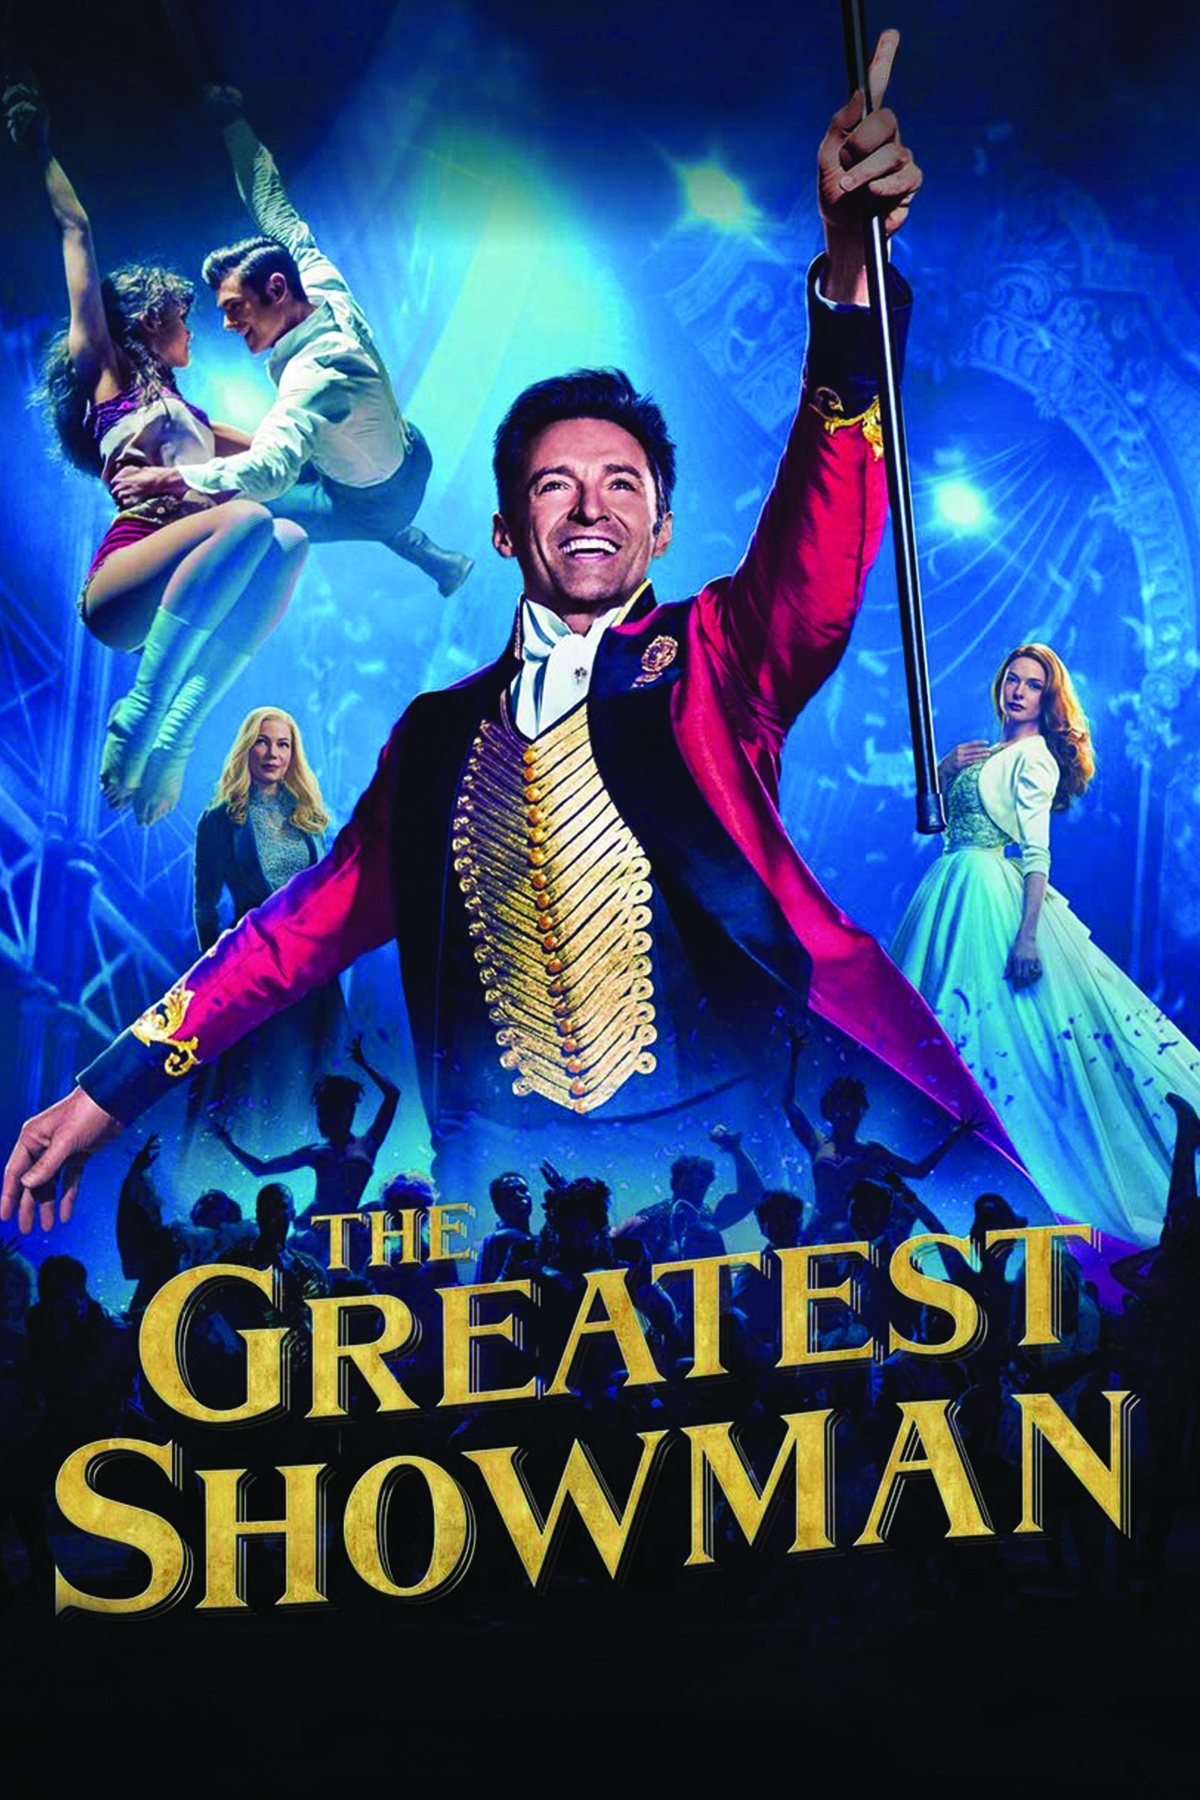 The Greatest Showman • PG